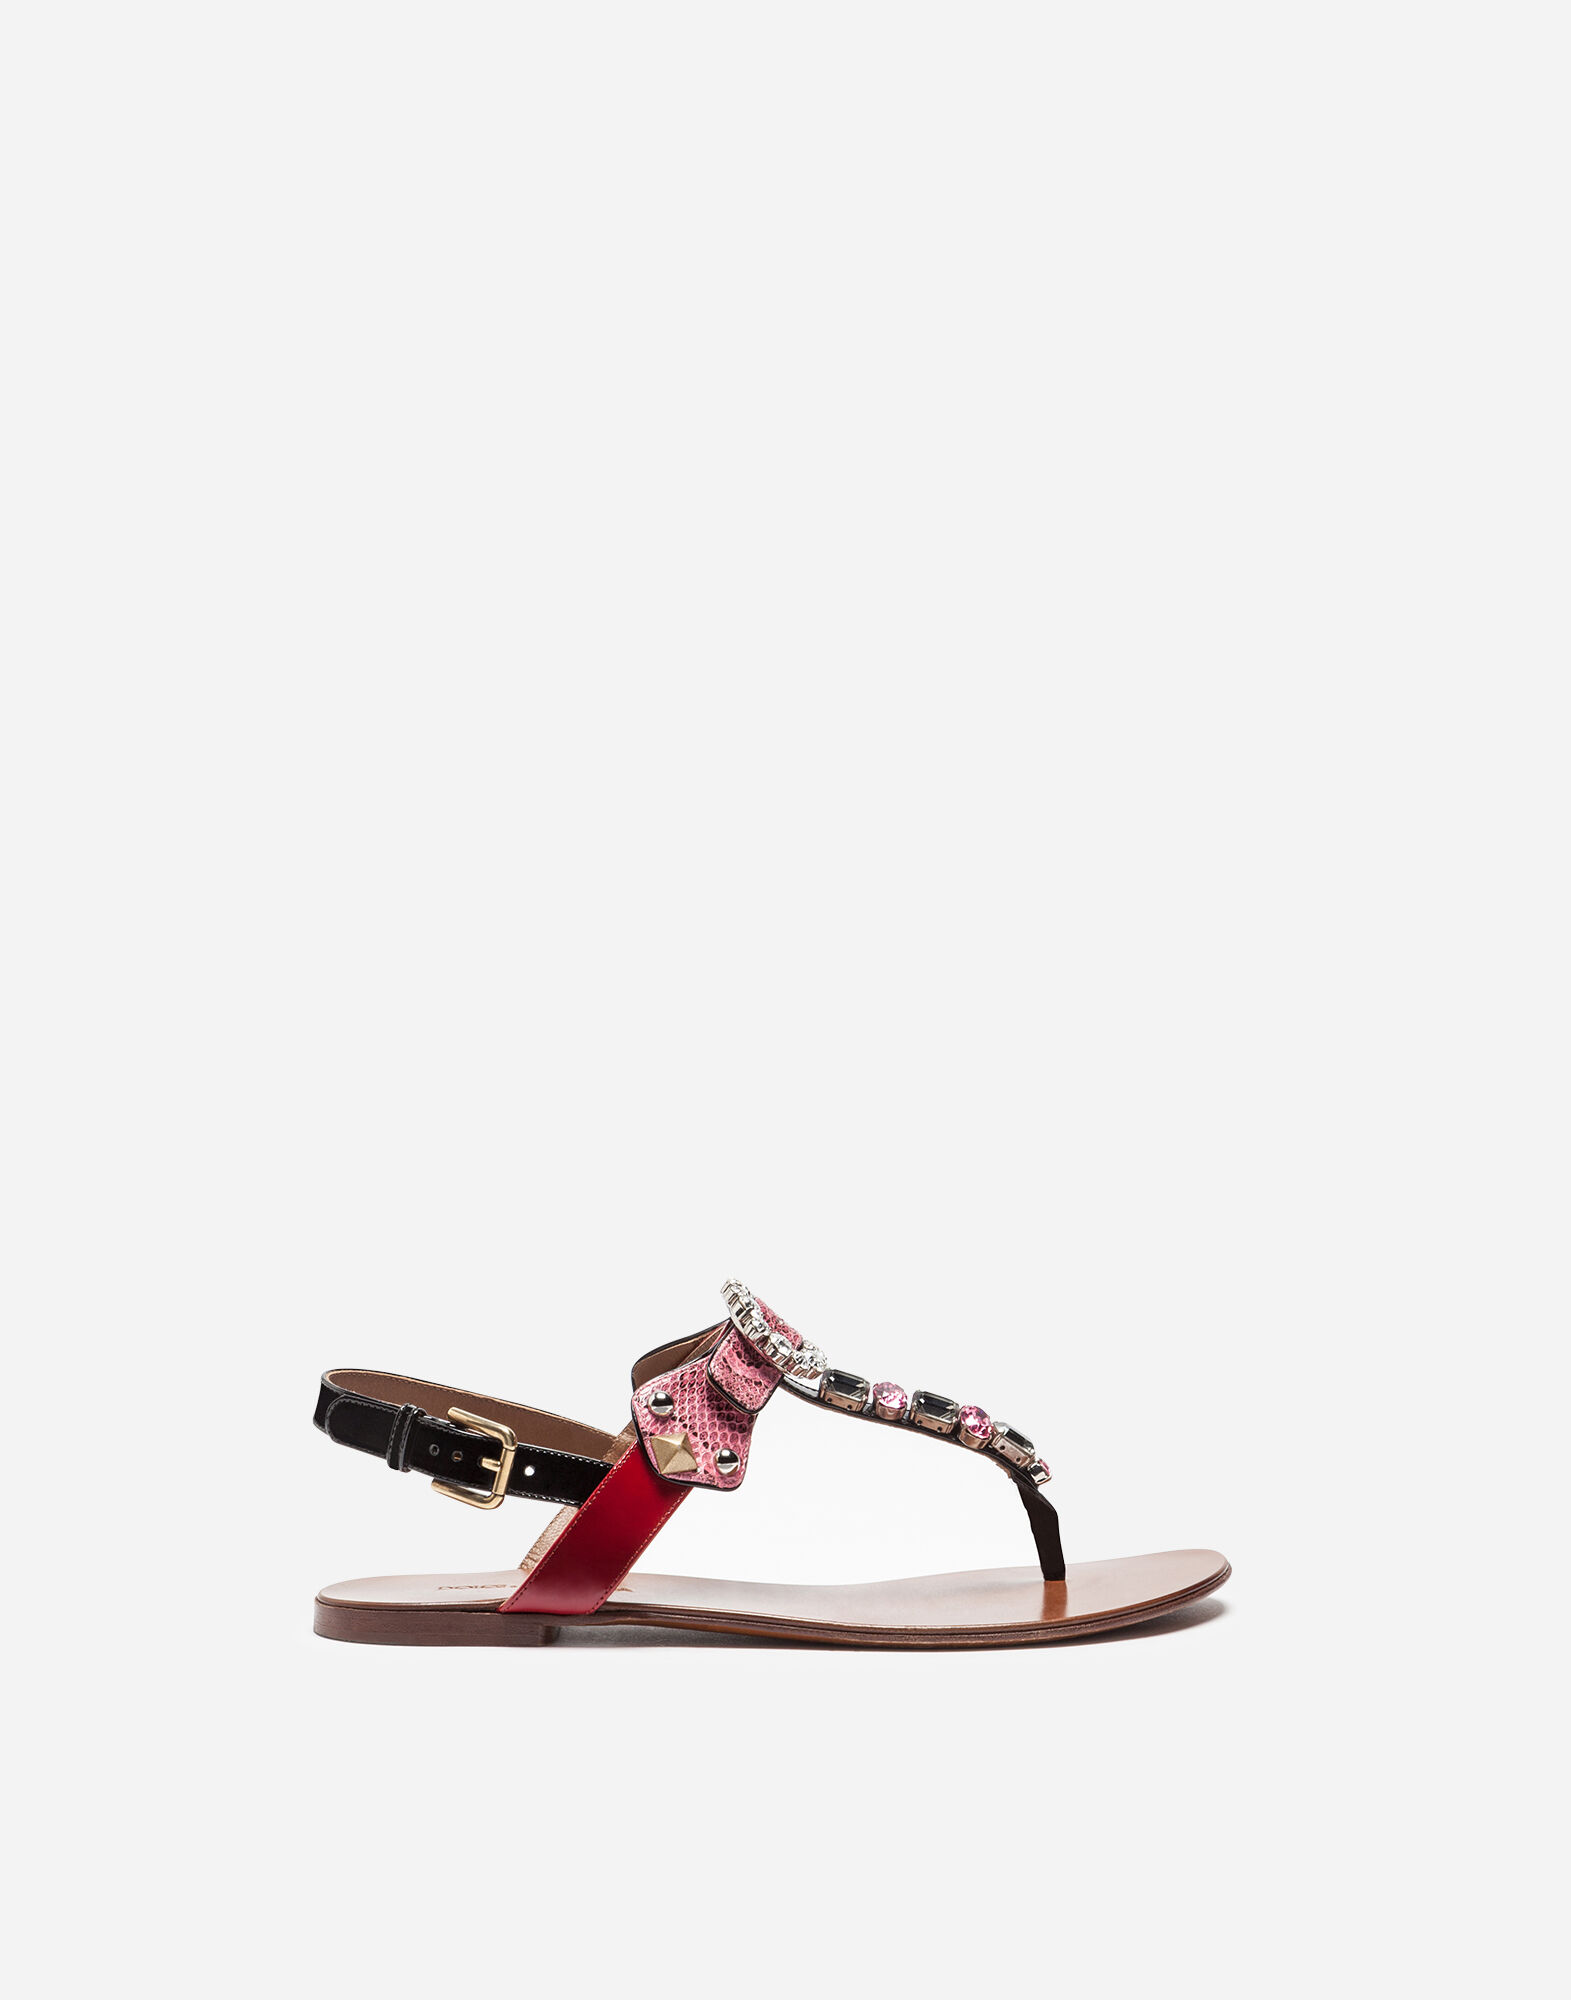 Printed Crepe Sandals With Sculpted HeelDolce & Gabbana nnxvxuz